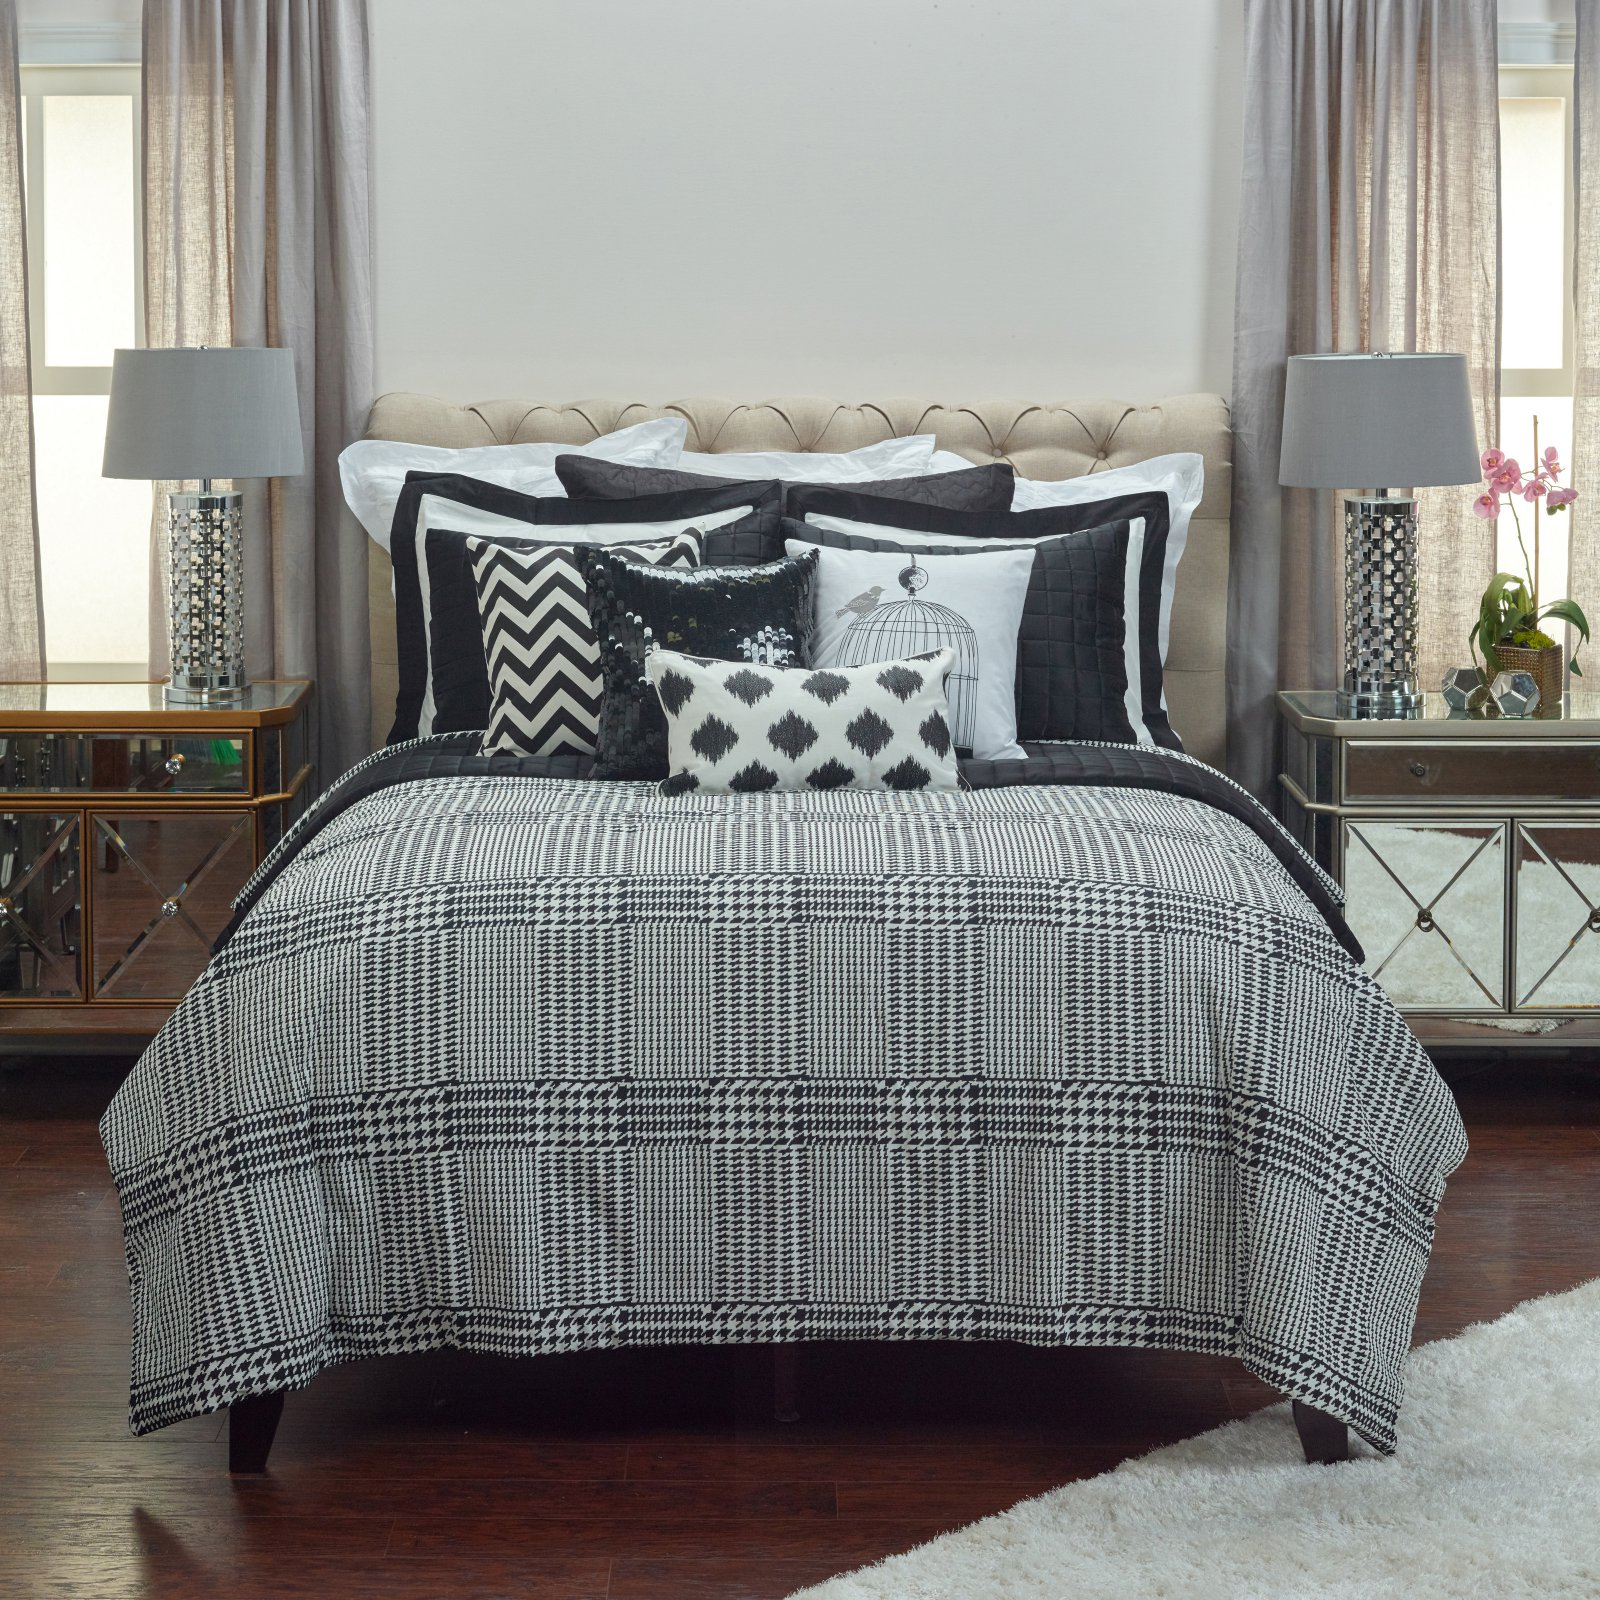 Rizzy Home Houndstooth Twin Size Comforter Set in Black Color